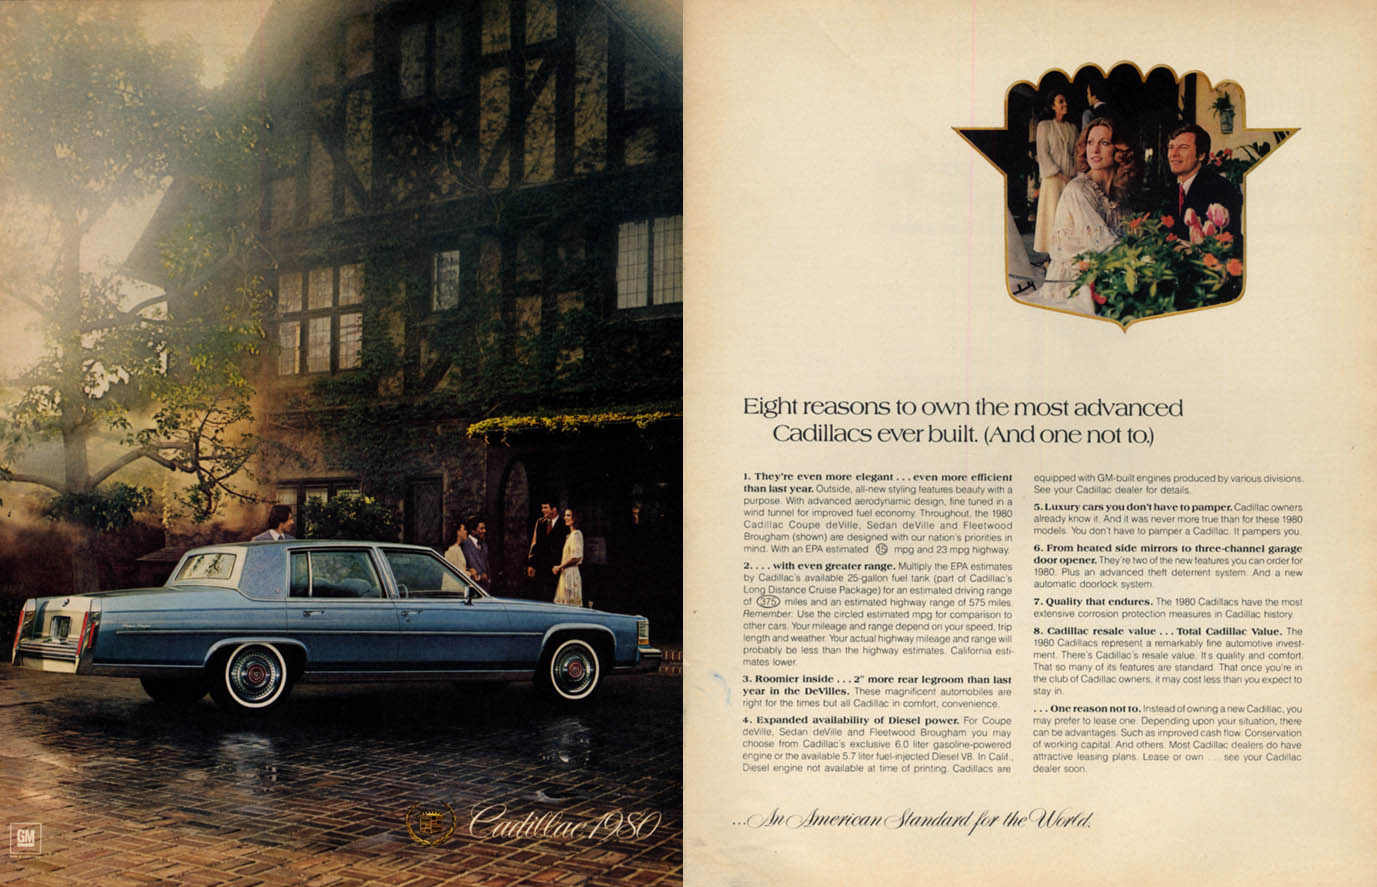 8 reasons to own the most advanced Cadillac Fleetwood Brougham ever built 1980 E